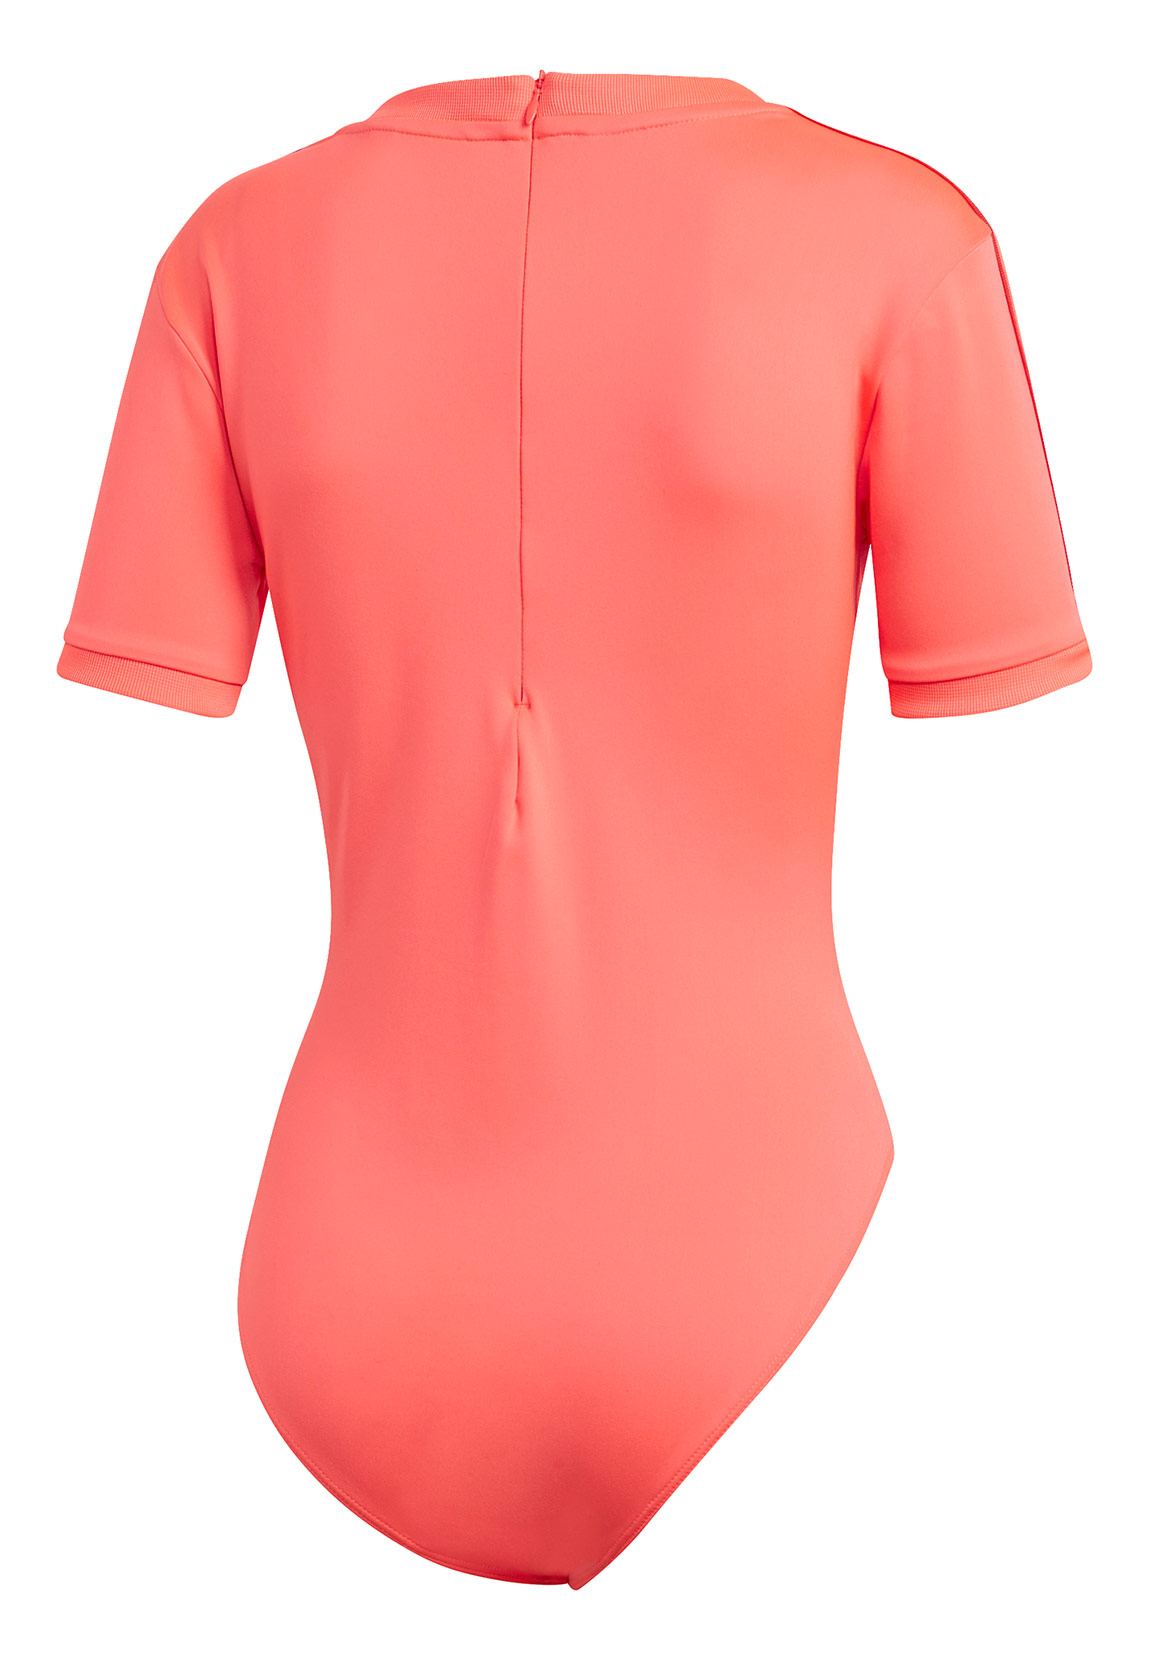 Details about Adidas Originals Body Ladies Ss Body ED7505 Pink